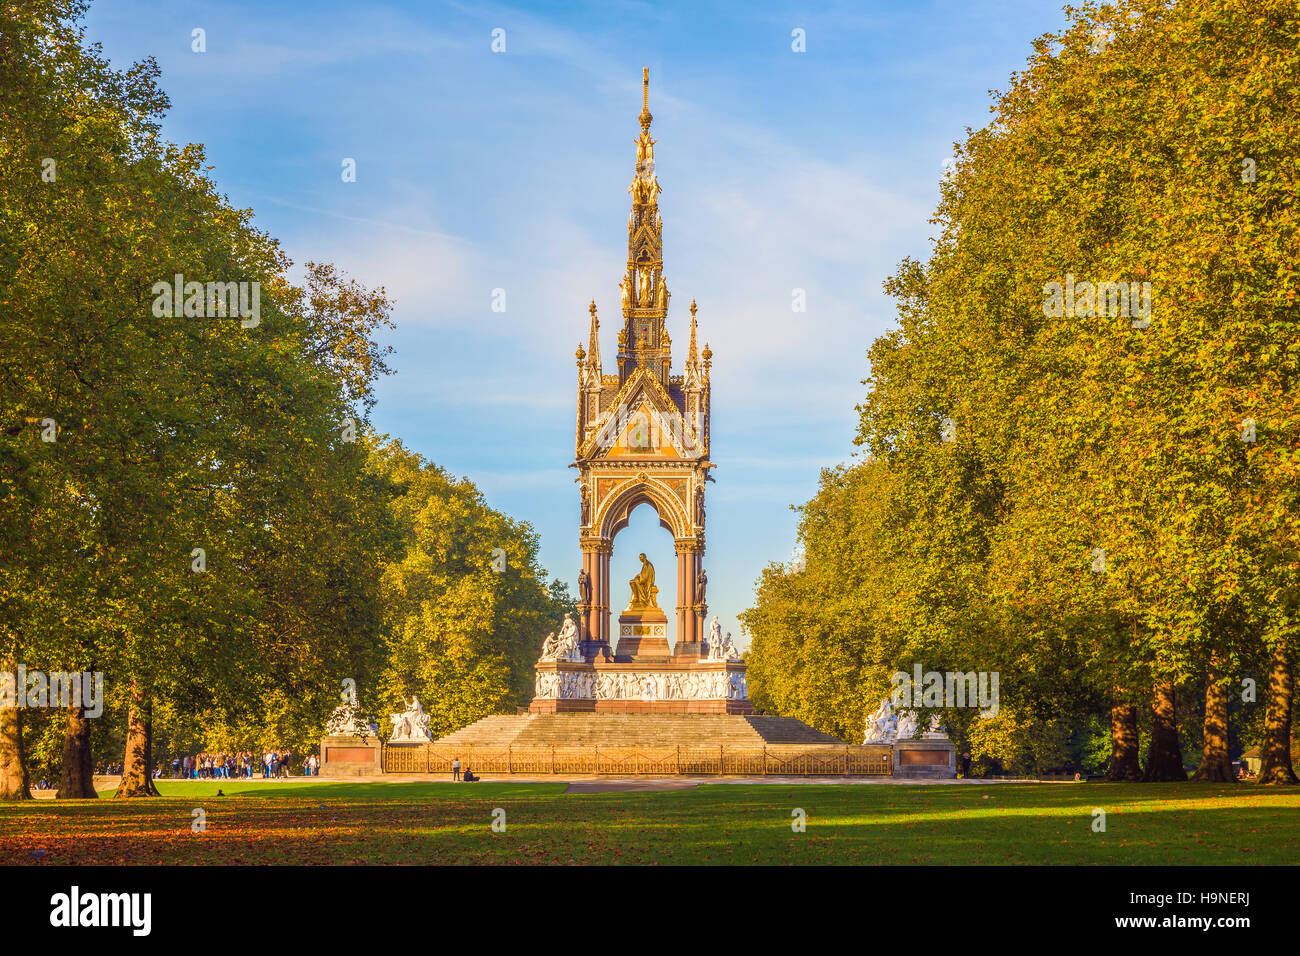 Autumn season at Albert Memorial in London - Stock Image